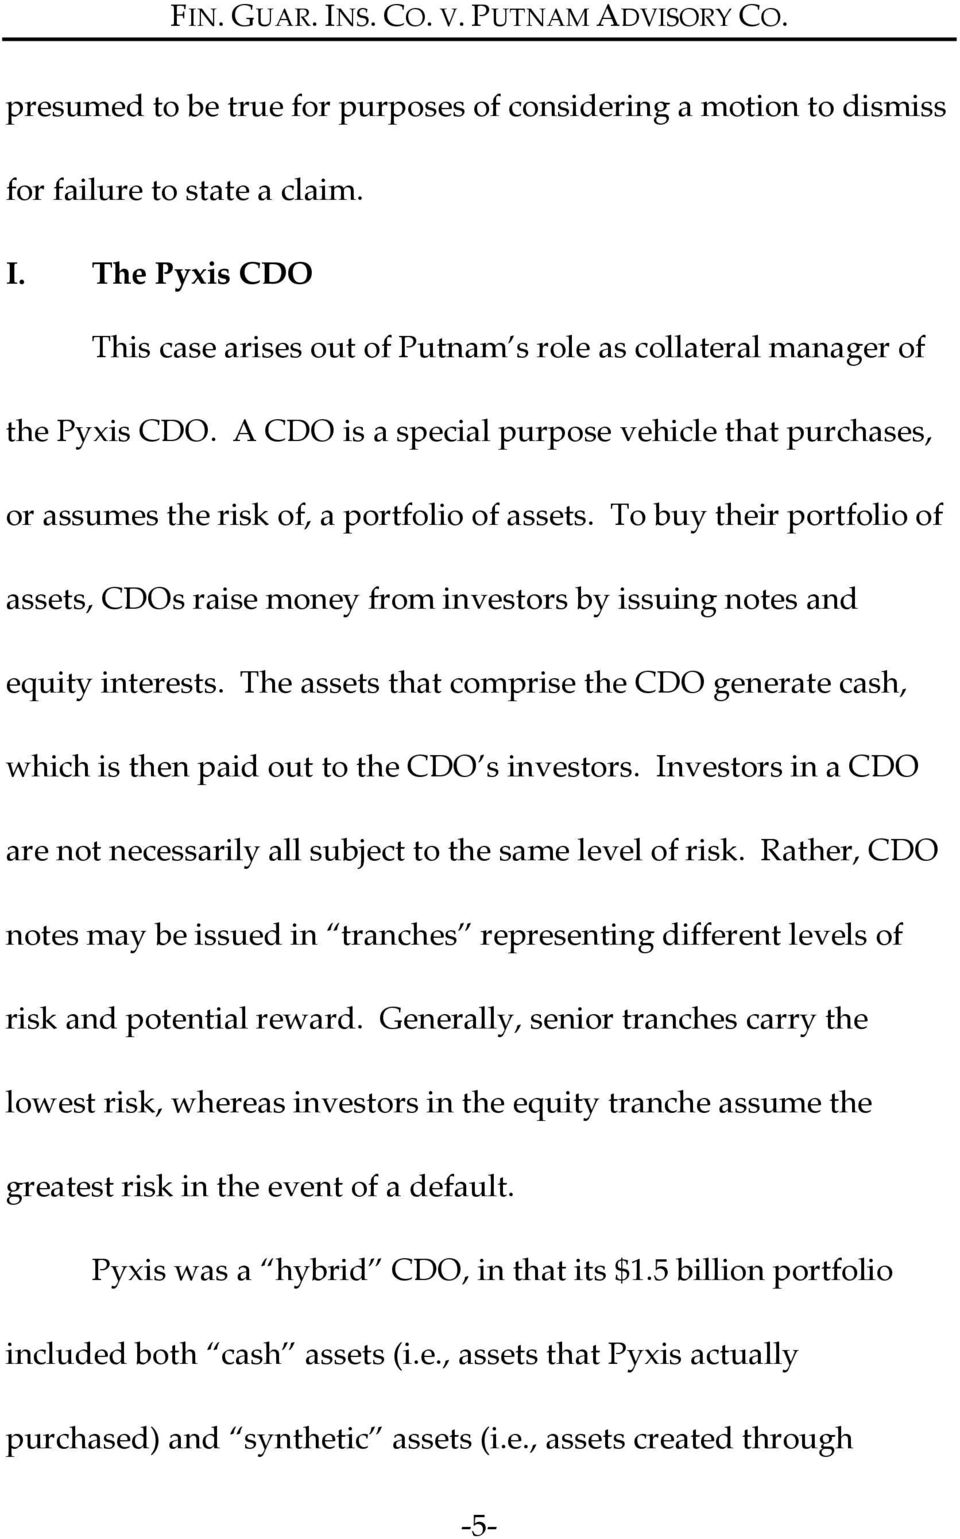 To buy their portfolio of assets, CDOs raise money from investors by issuing notes and equity interests. The assets that comprise the CDO generate cash, which is then paid out to the CDO s investors.